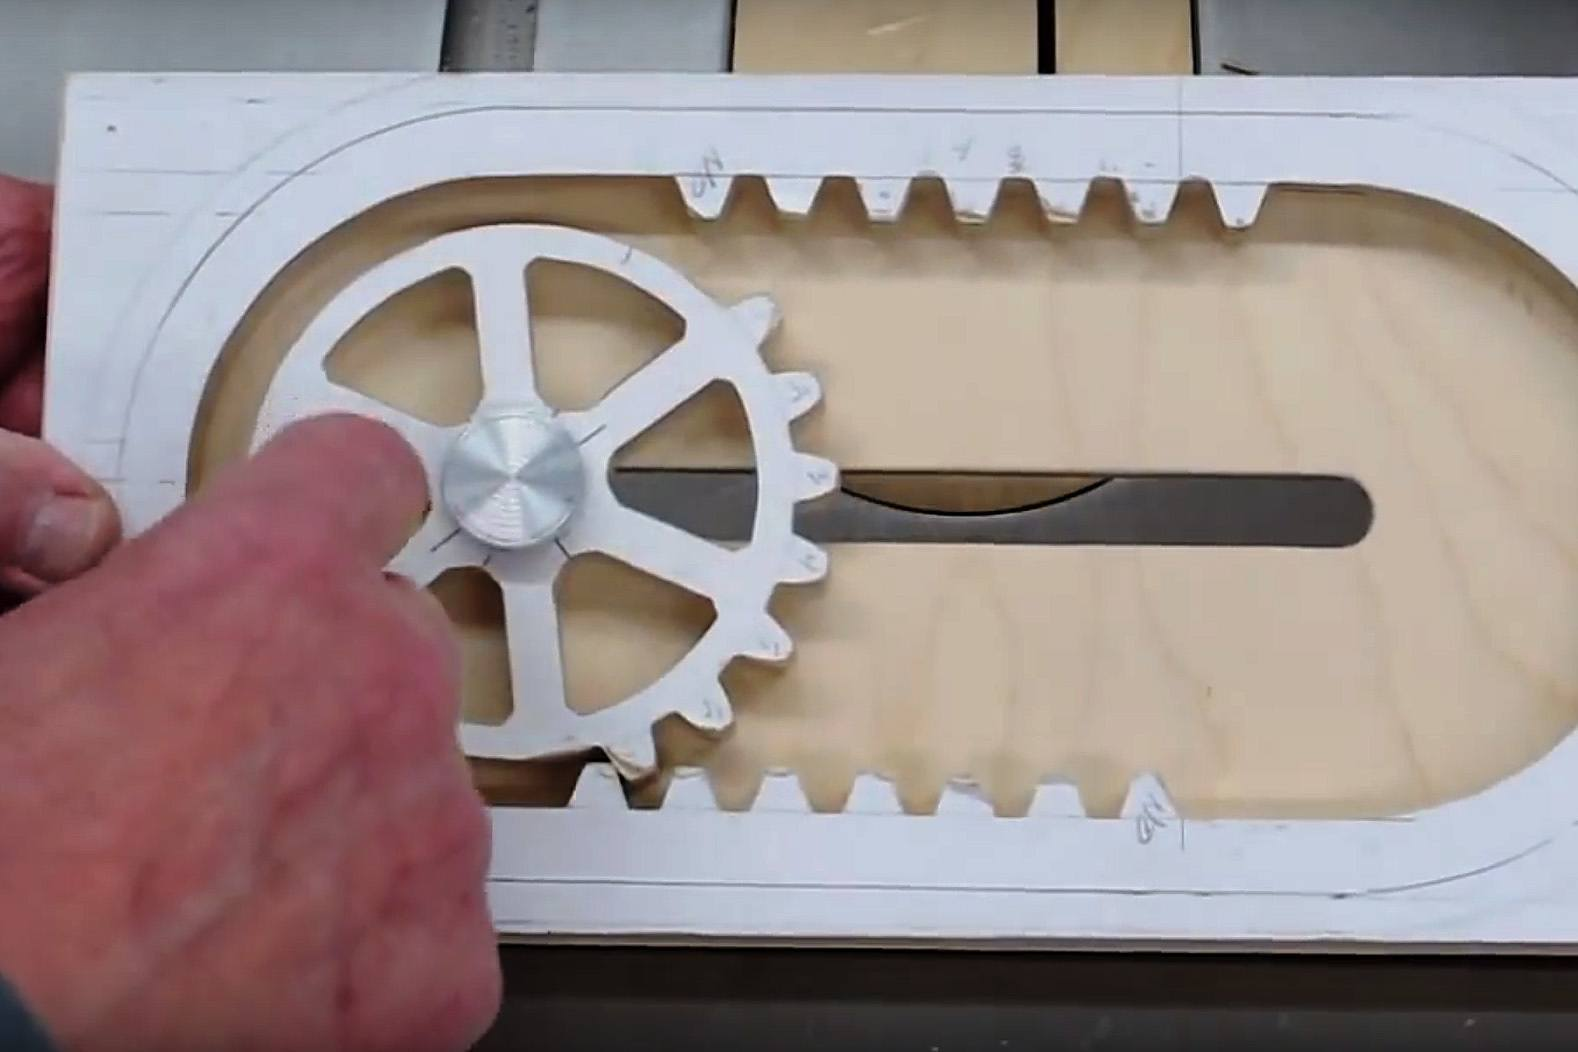 How It's Made: A Wooden Reciprocating Rack and Pinion